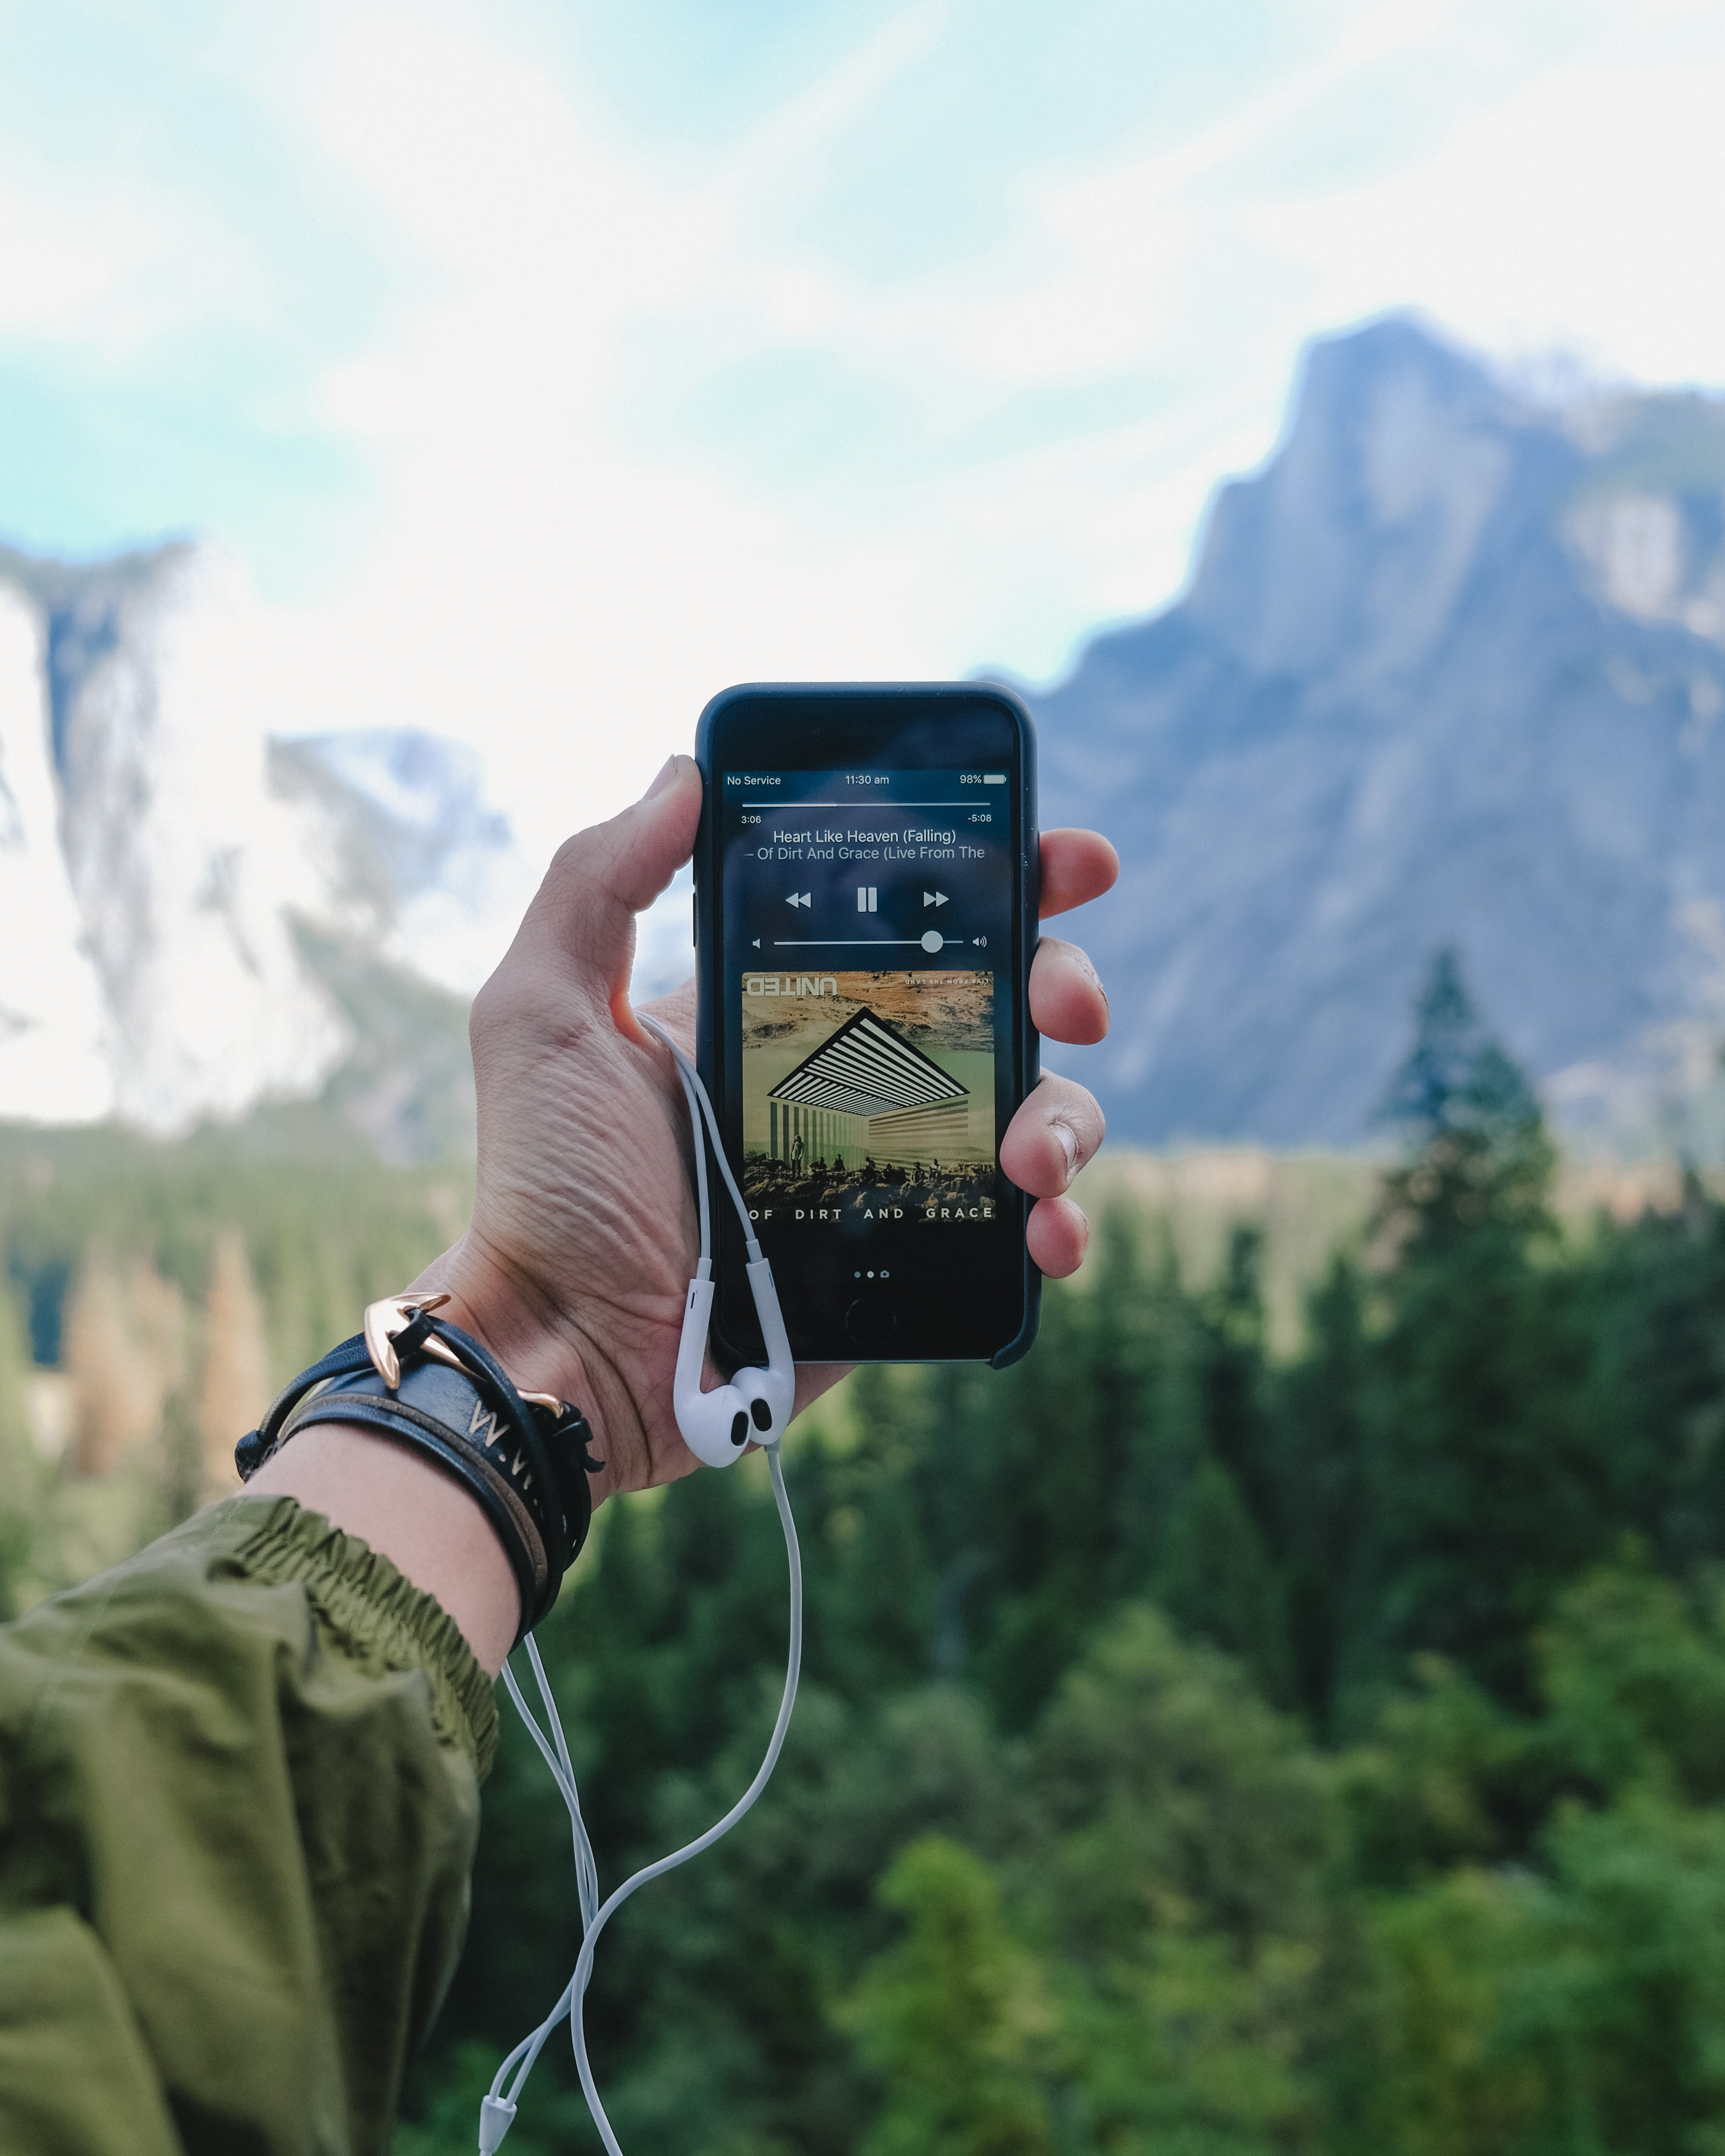 A person's outstretched hand holding an iPhone with a music player in the Yosemite Valley